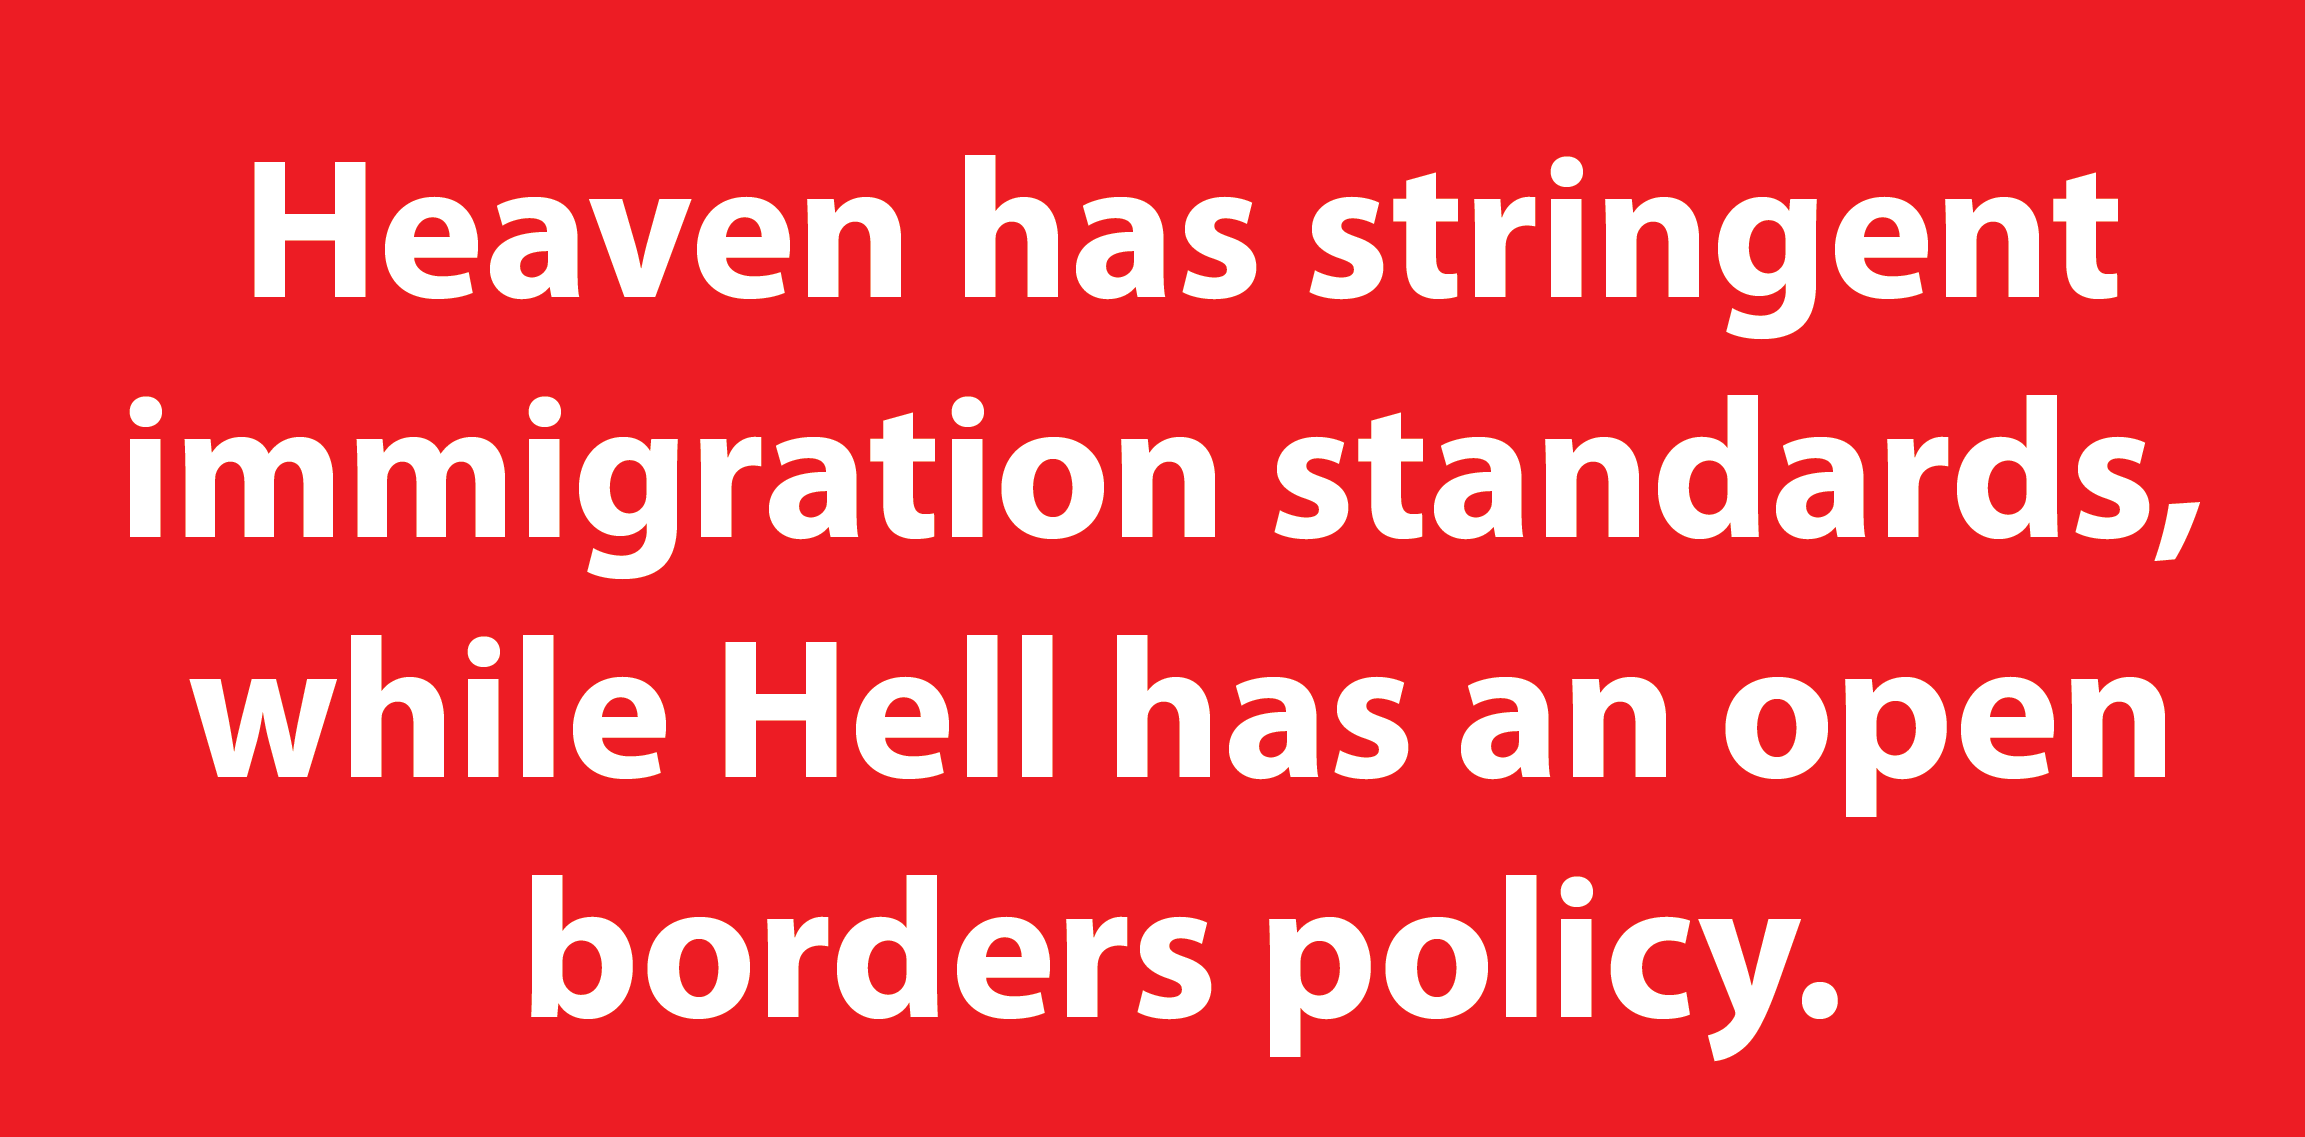 Contrasting the immigration policies of heaven and hell